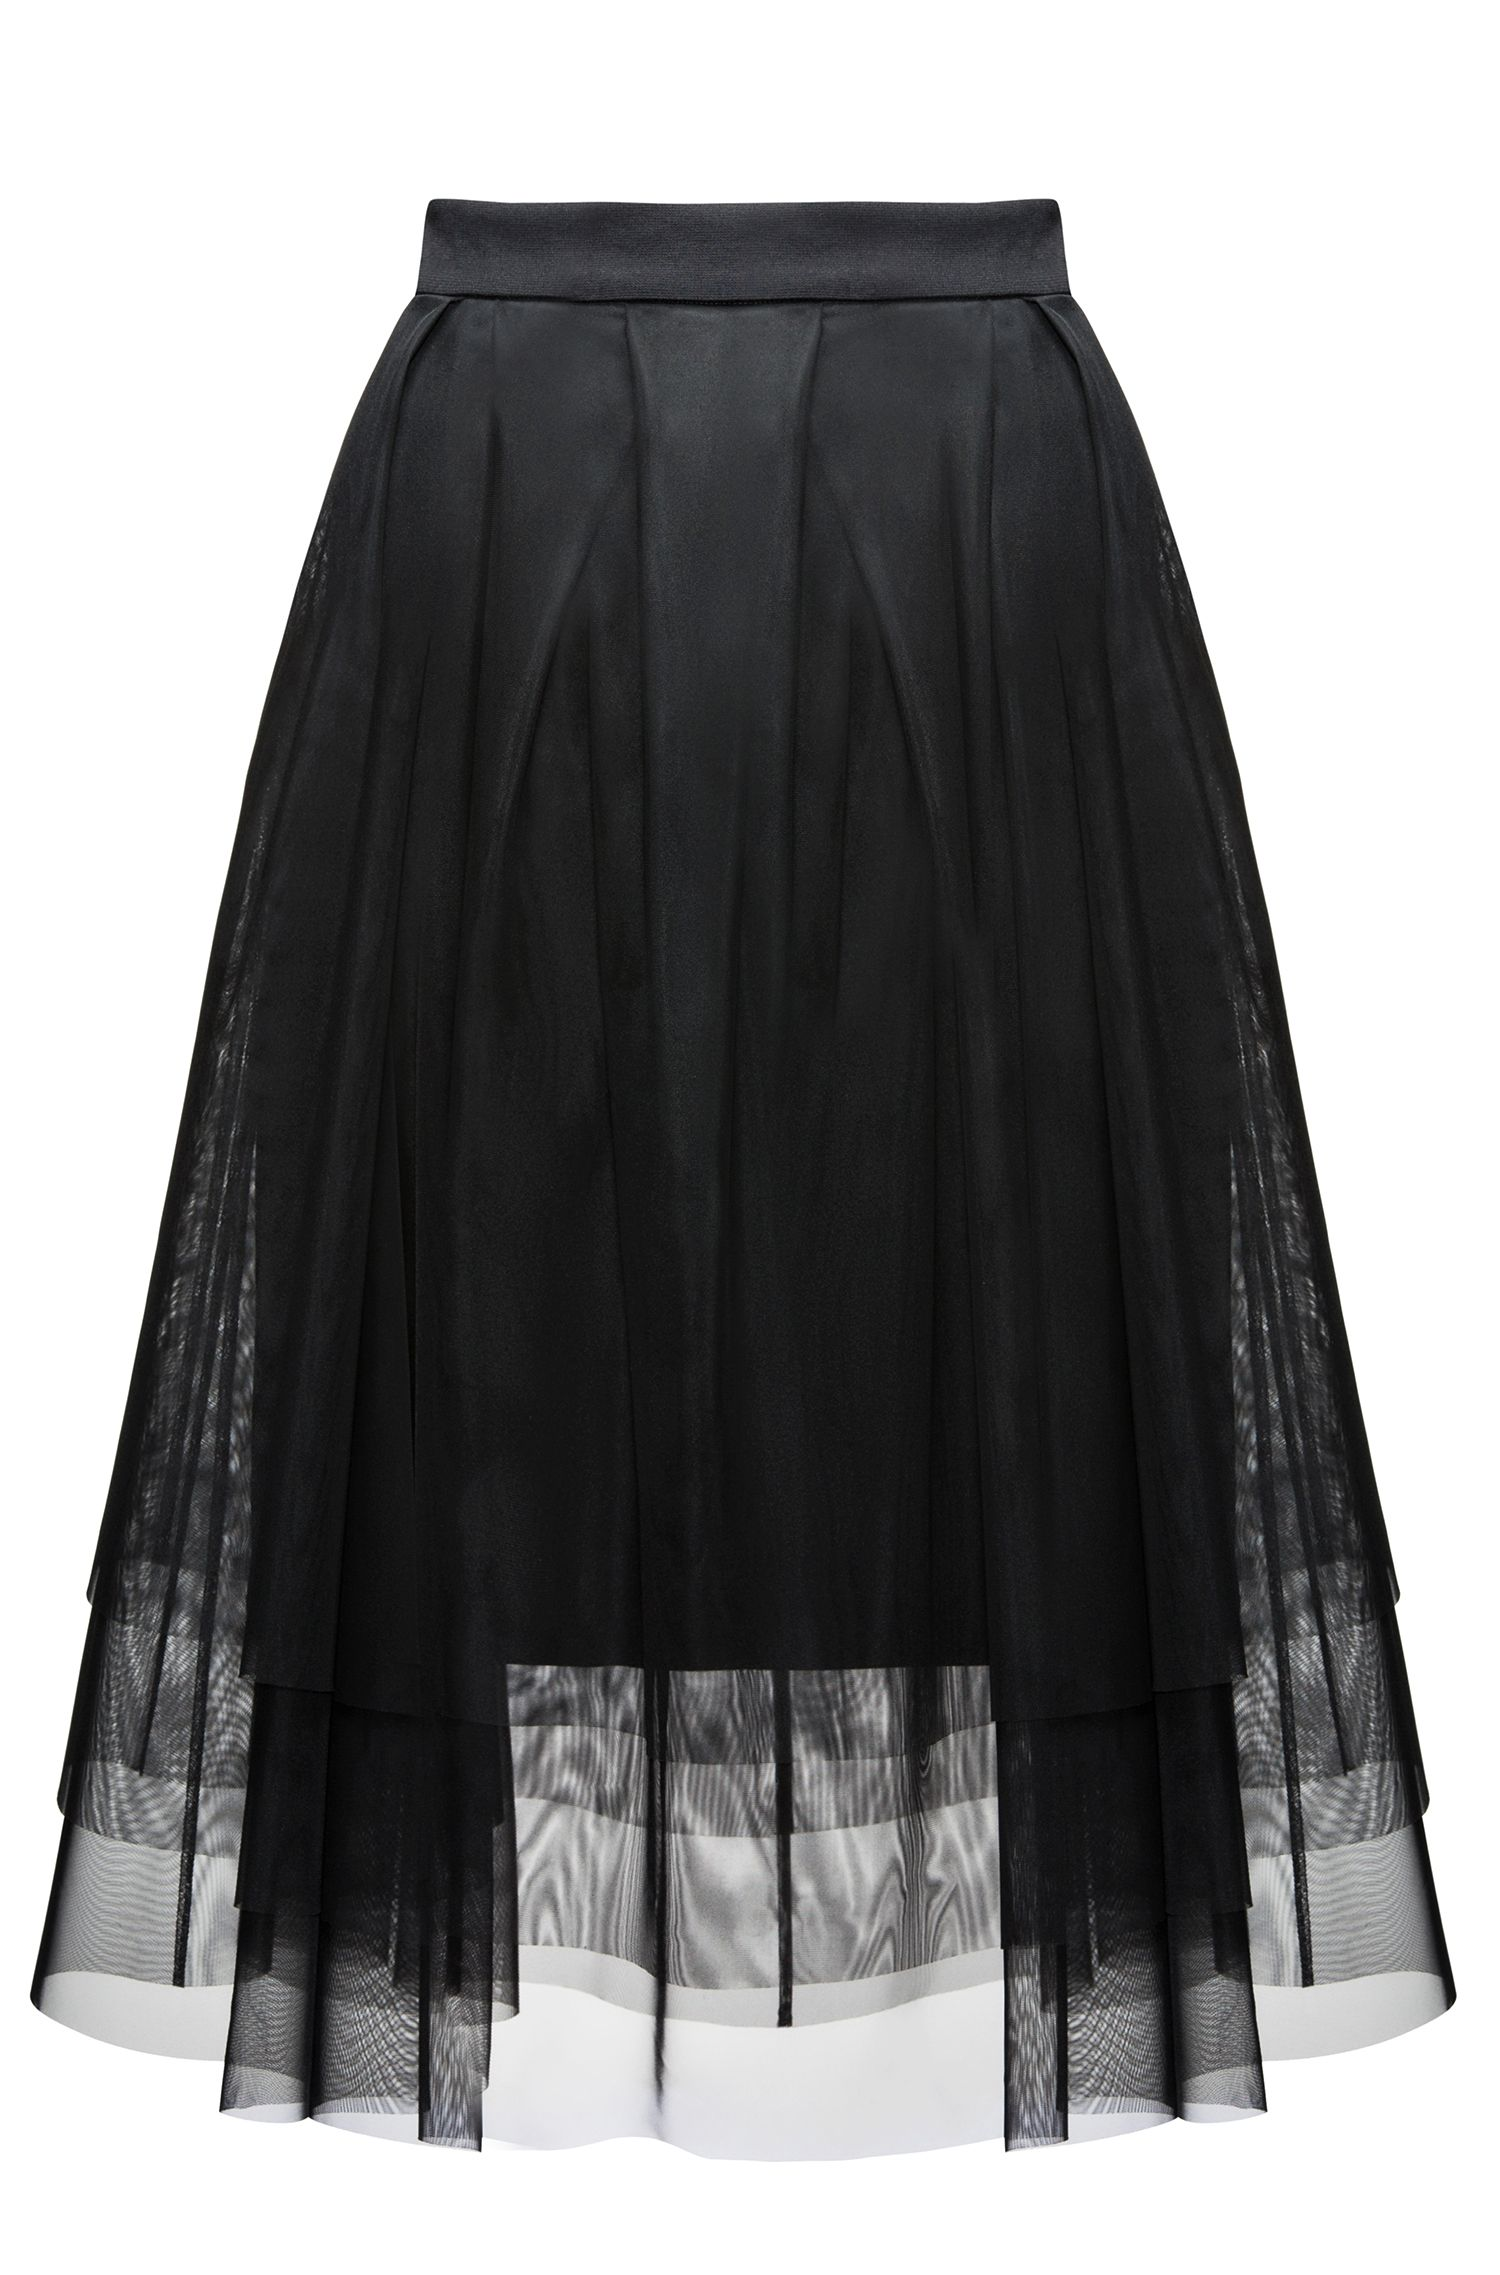 Pleated A-line skirt in layered tulle and jersey